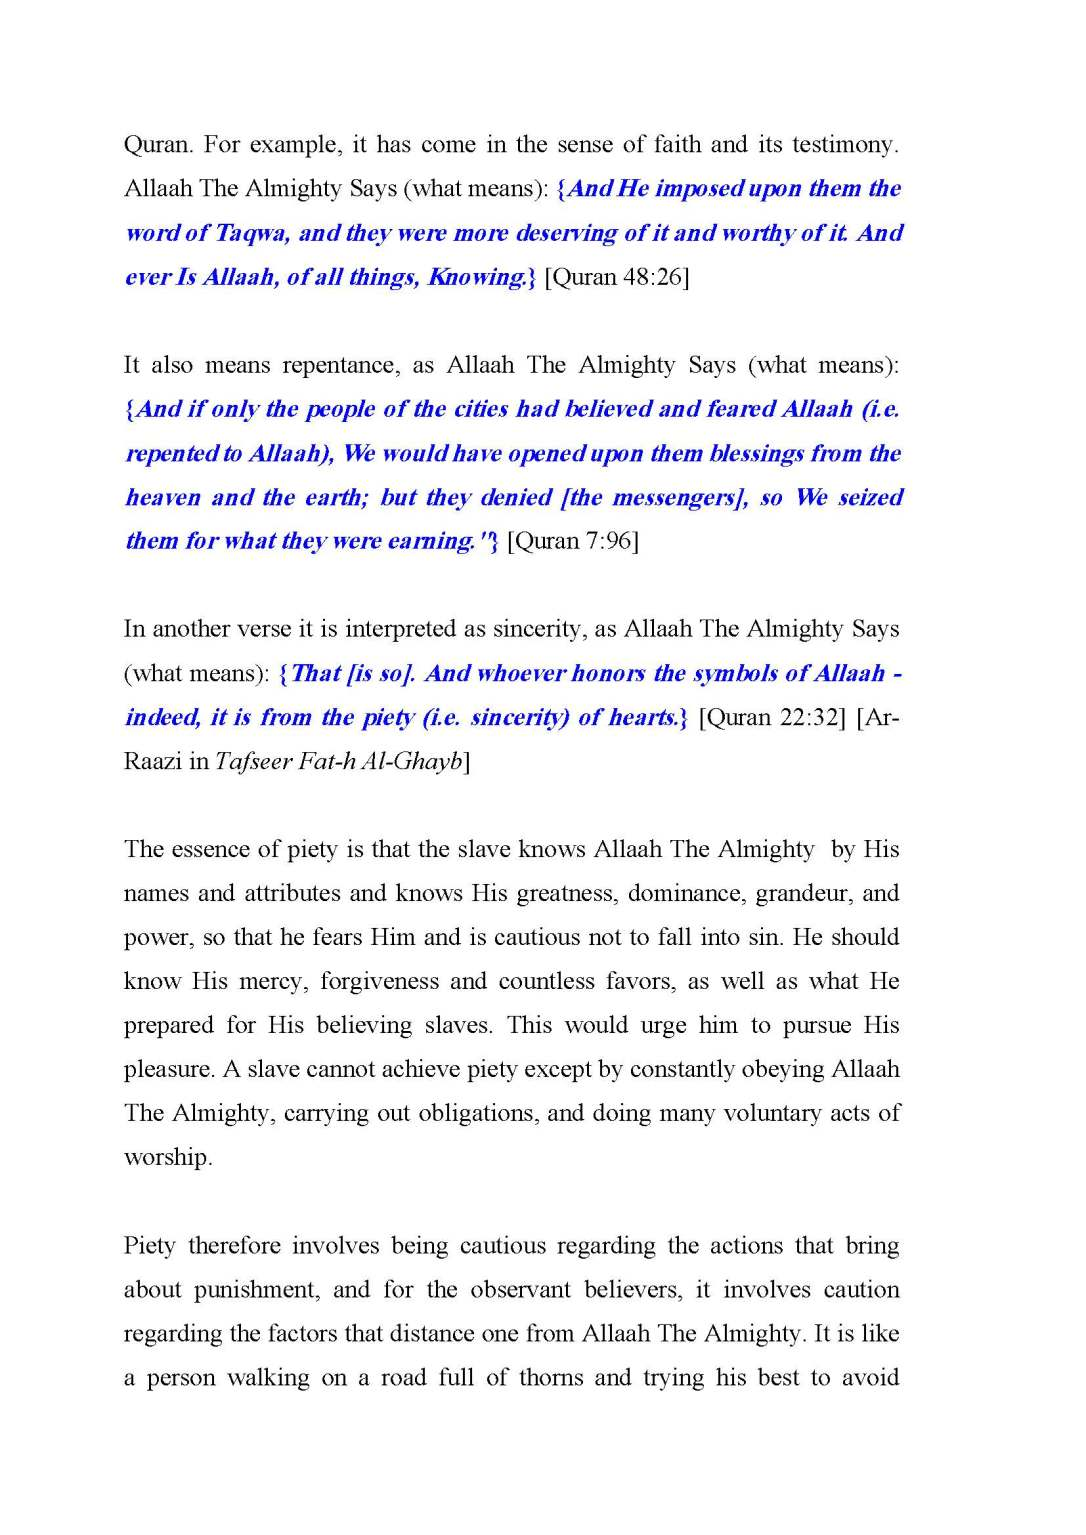 Benefits_and_Secrets_of_Fasting_Page_03